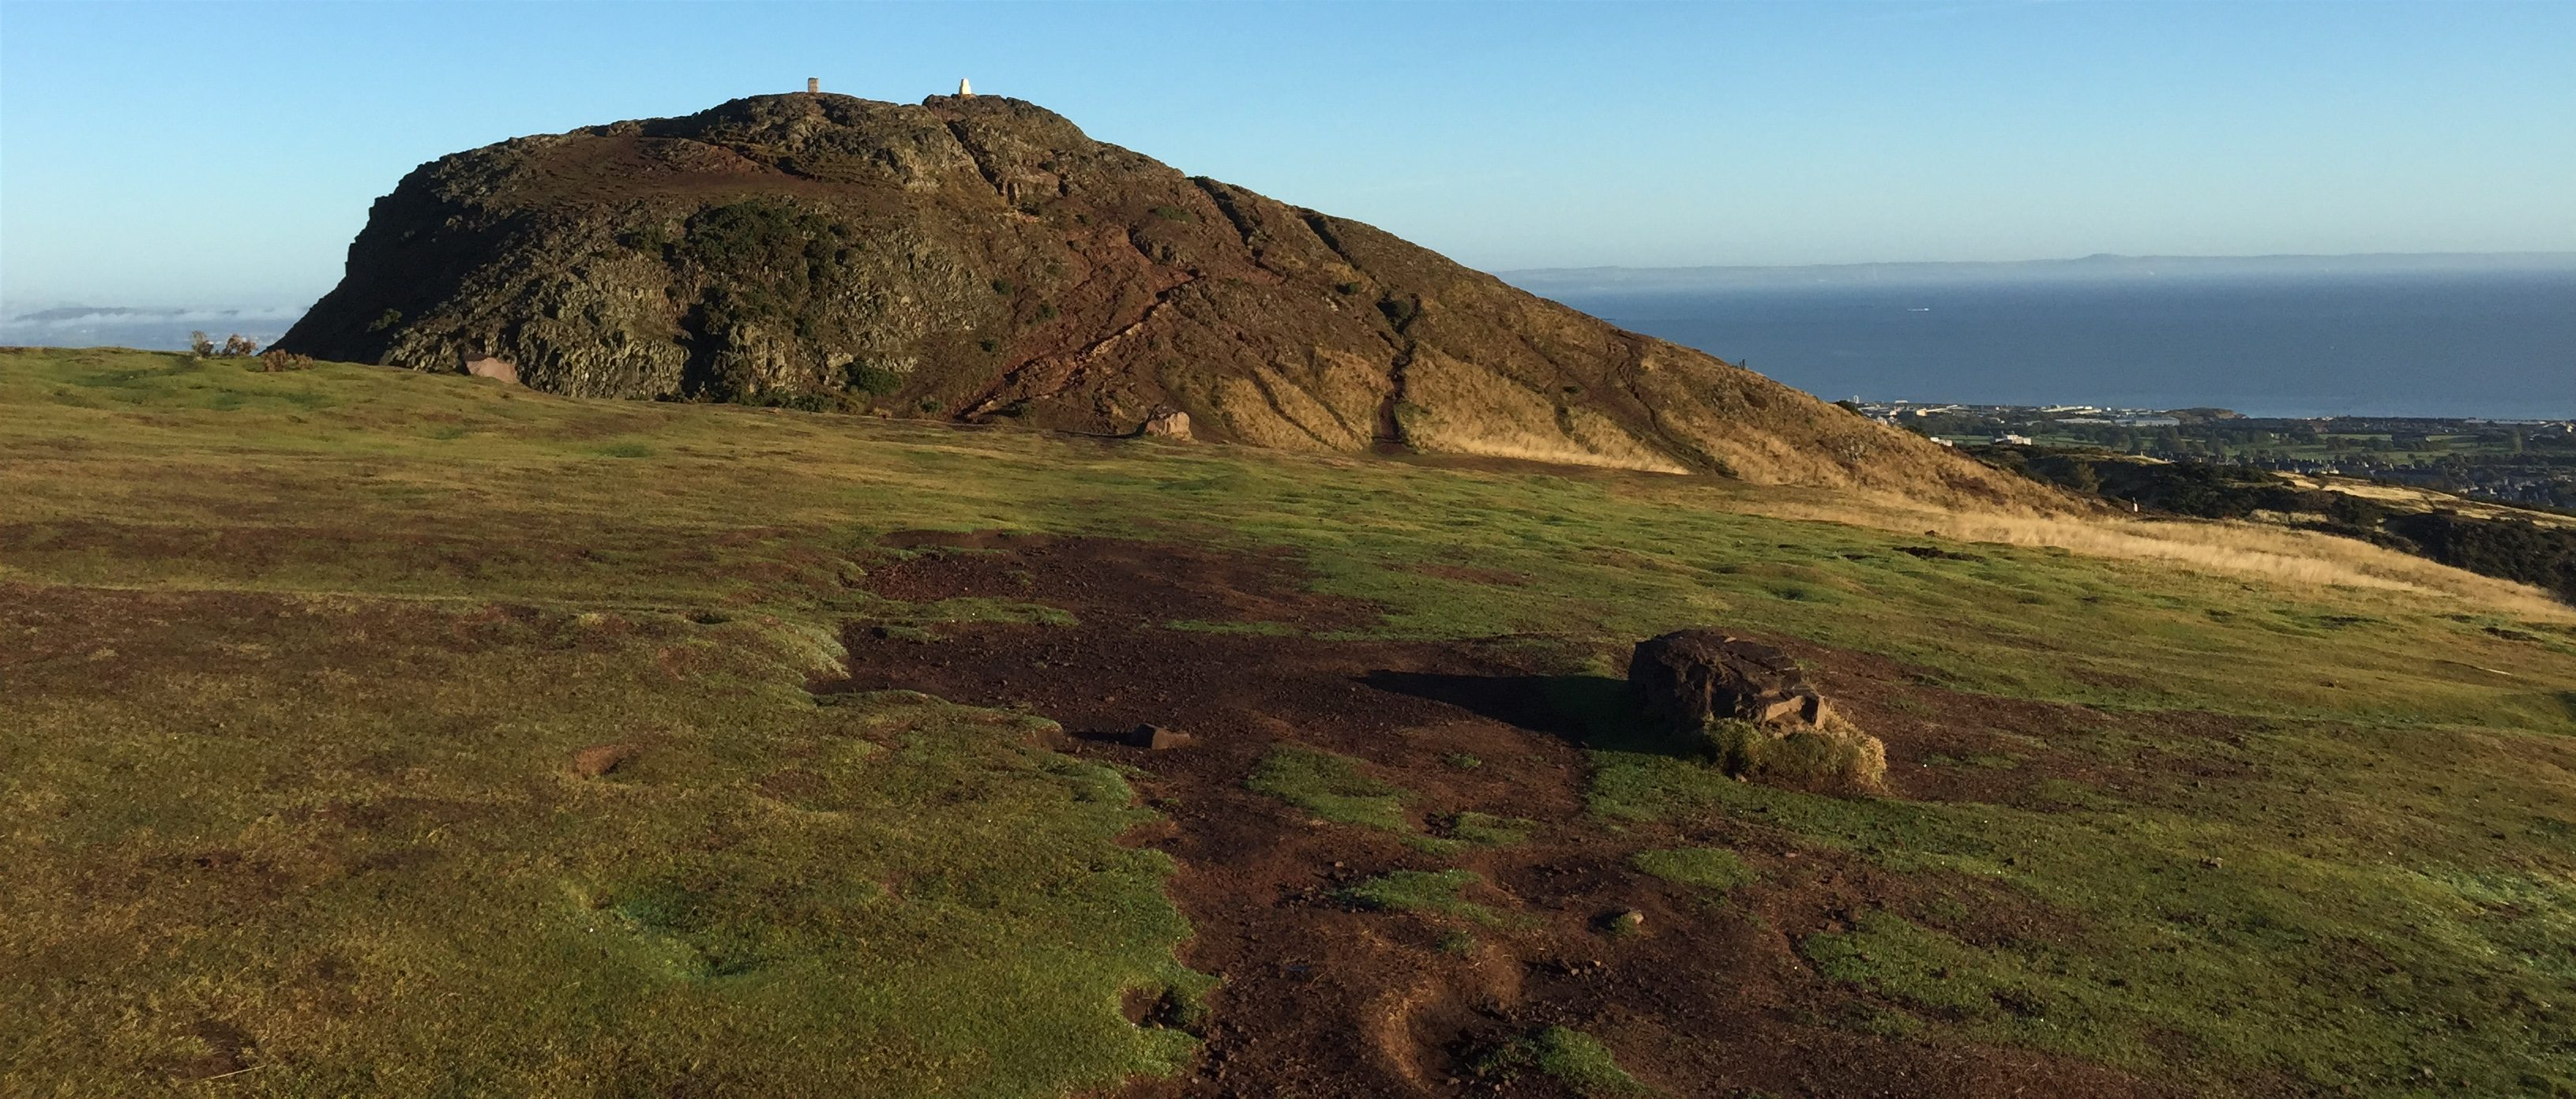 Hilltop of Arthur's Seat, with a view of the ocean in the distance. Scotland.